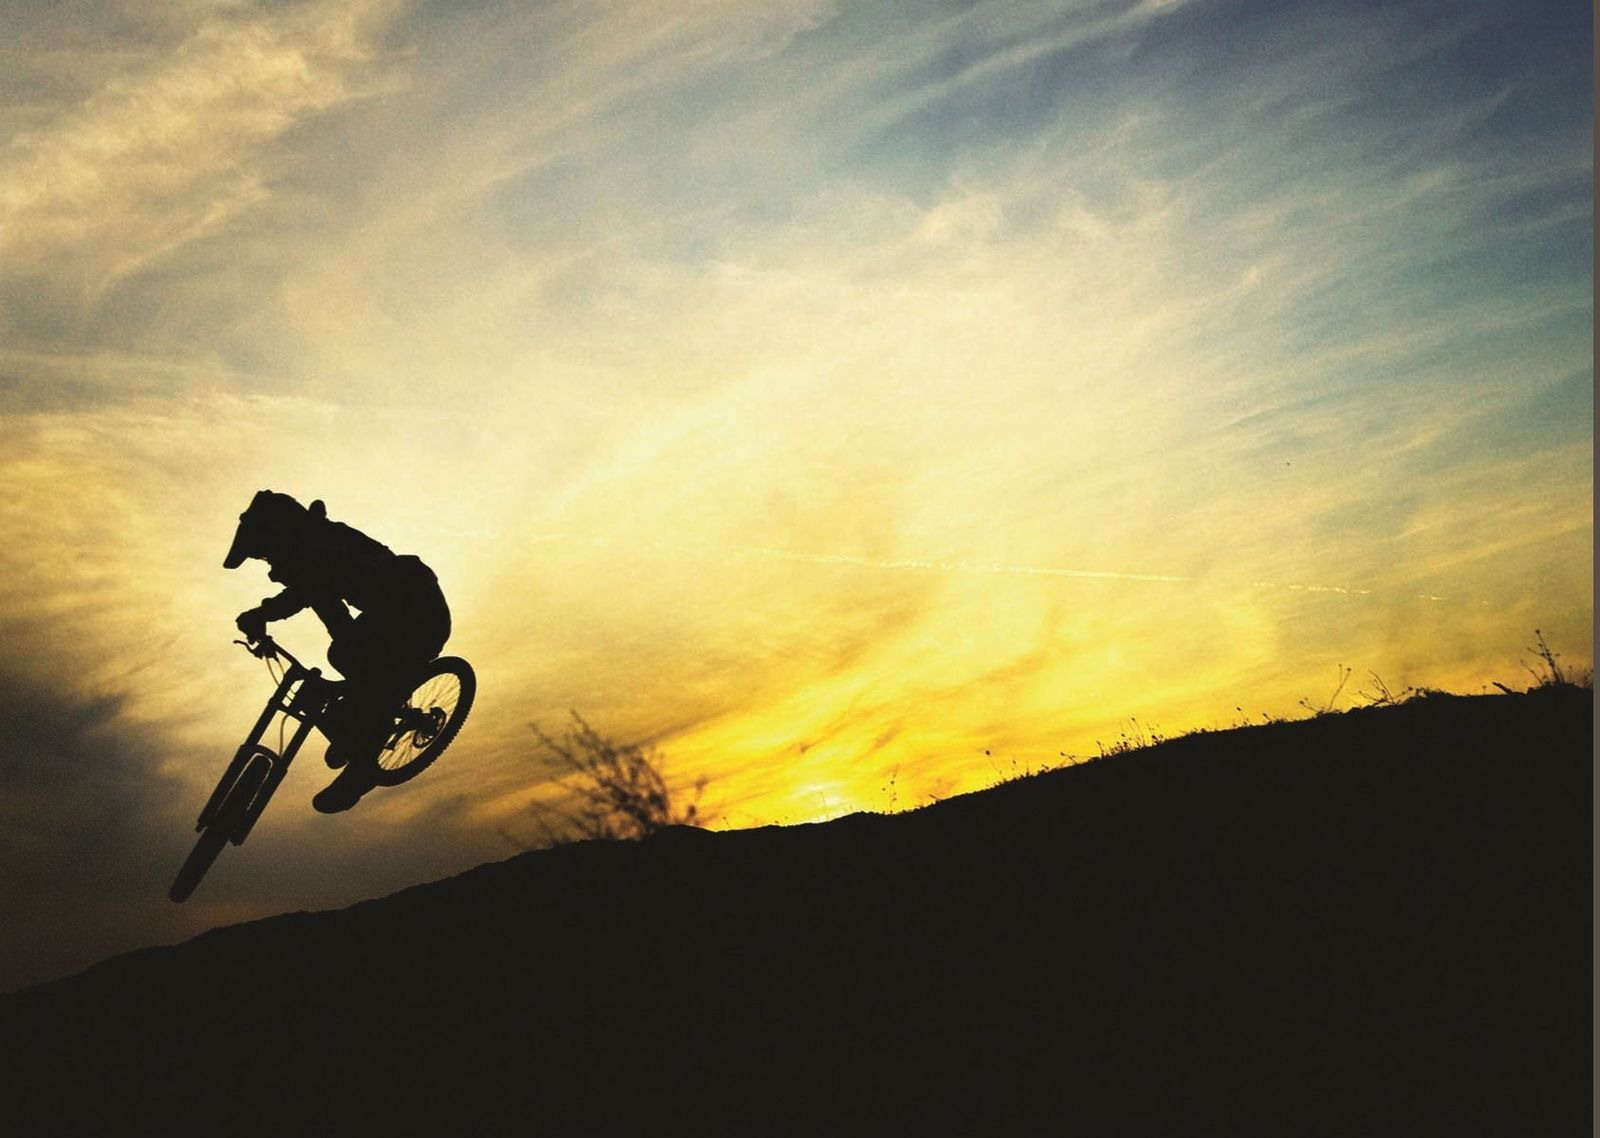 138531 BMX MOUNTAIN BIKE SUNSET JUMP Wall Print Poster UK | eBay